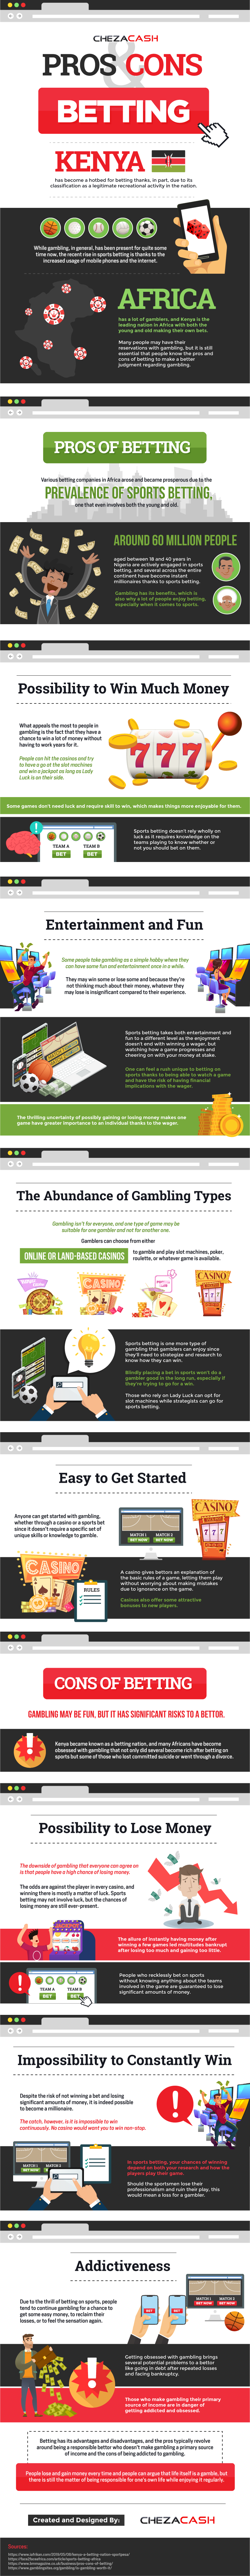 Pros and Cons of Betting #infographic